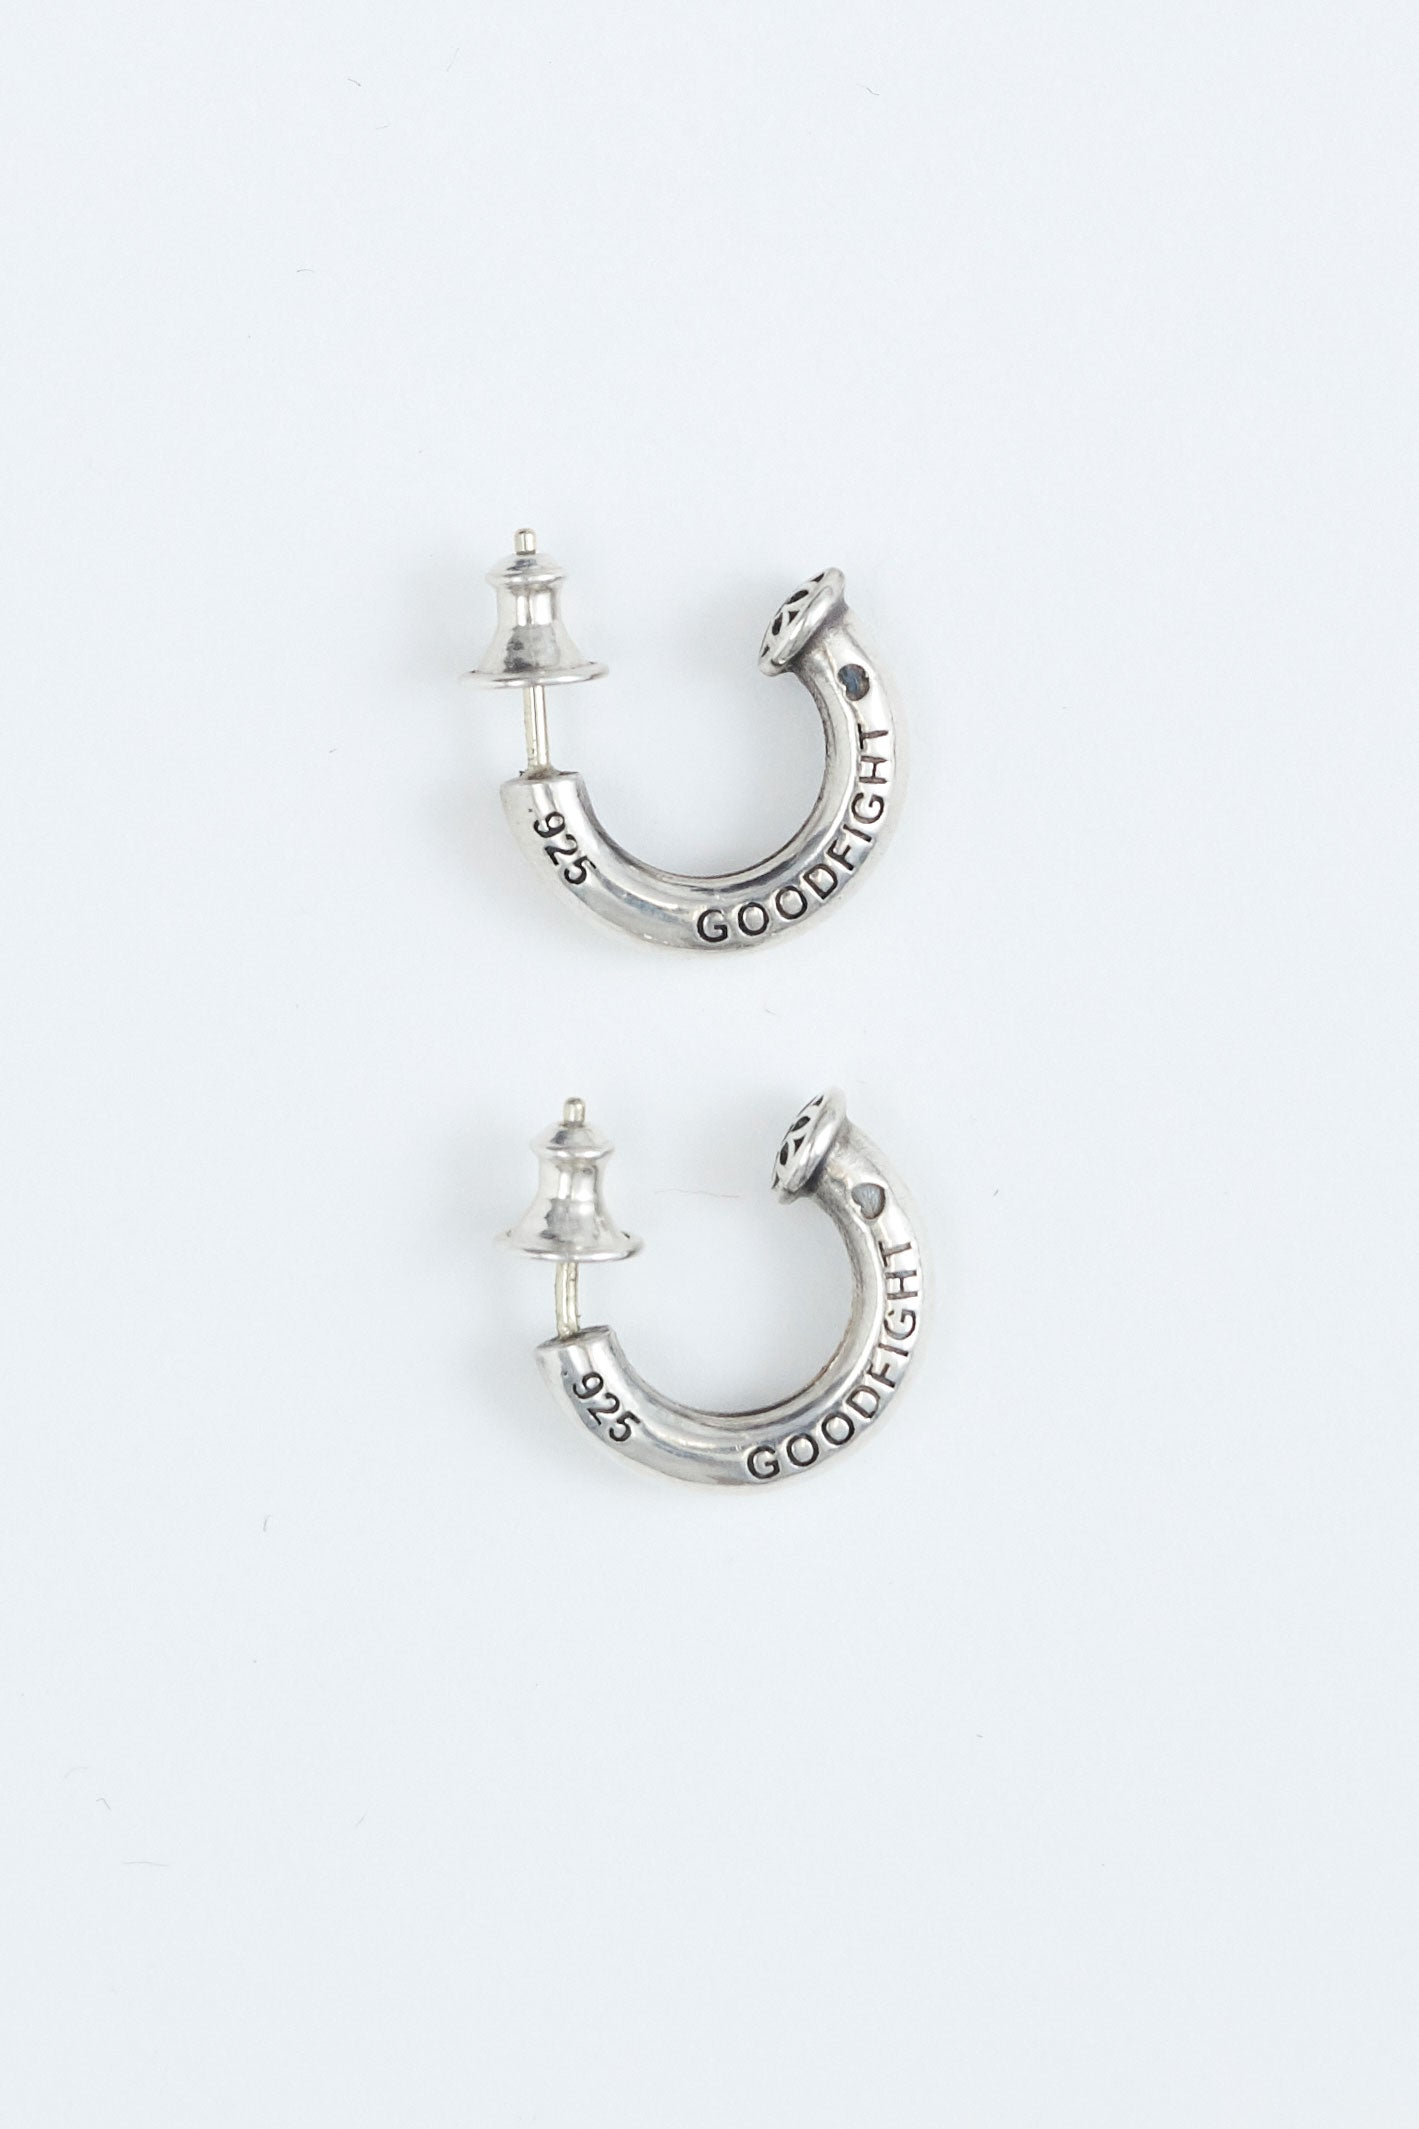 Good Art Hlywd for Goodfight 925 Earring Hoop